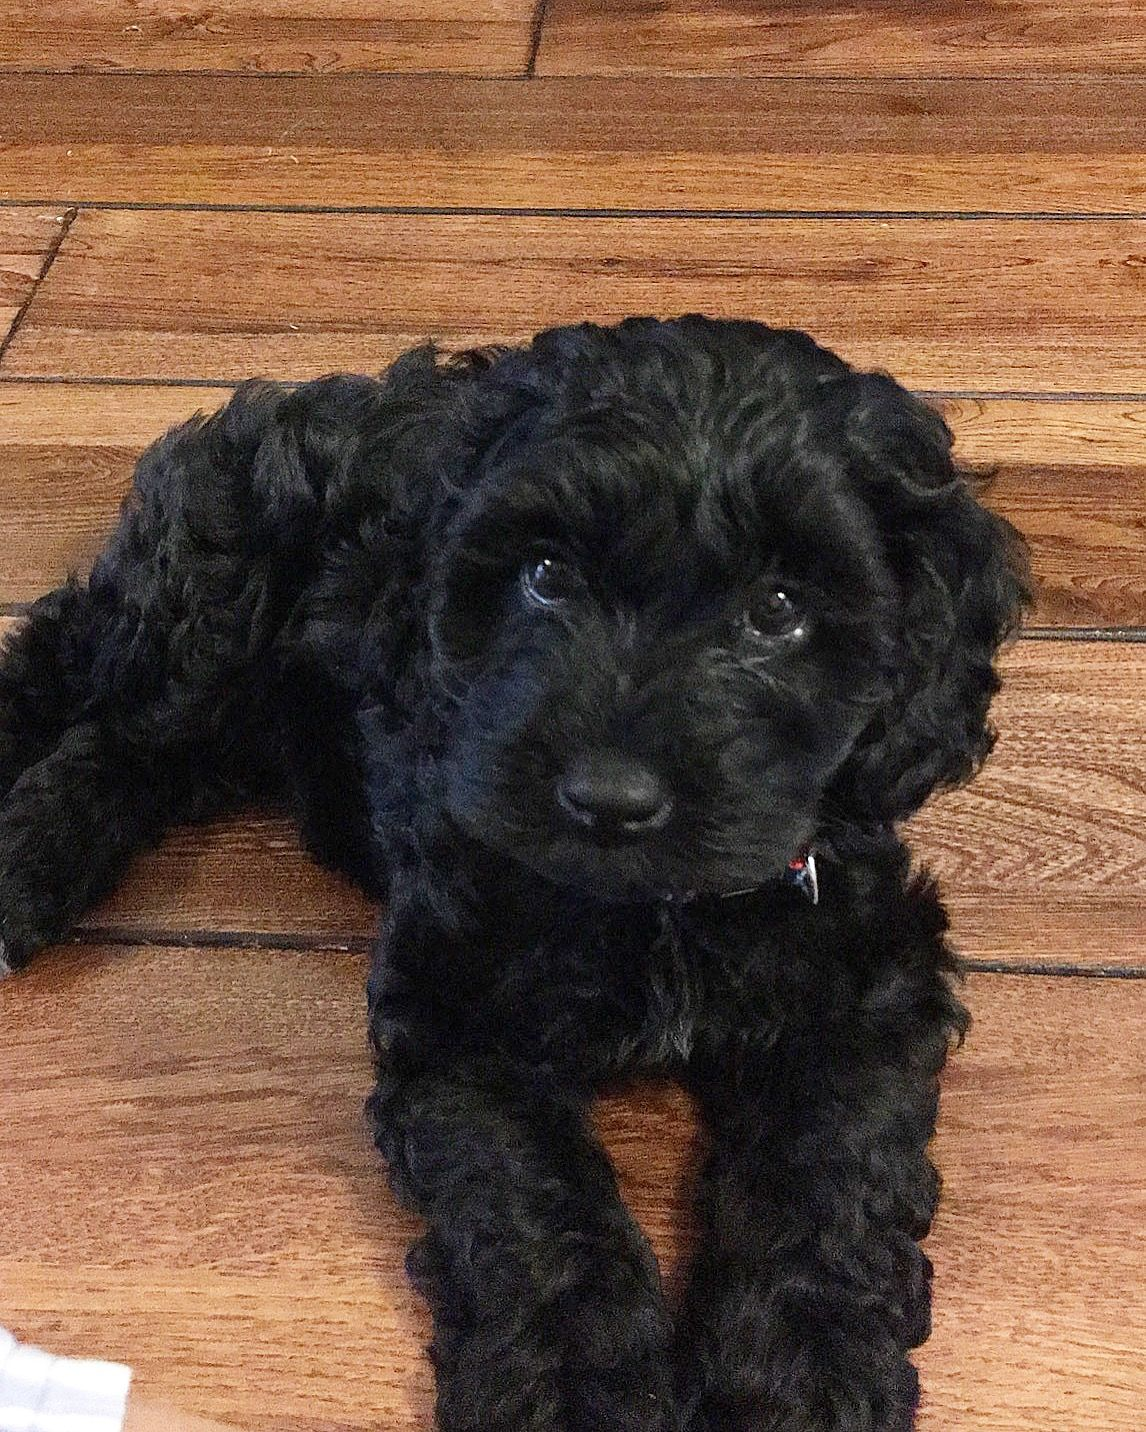 Meet June Cockapoo Puppy For Sale In Virginia Beach Virginia I